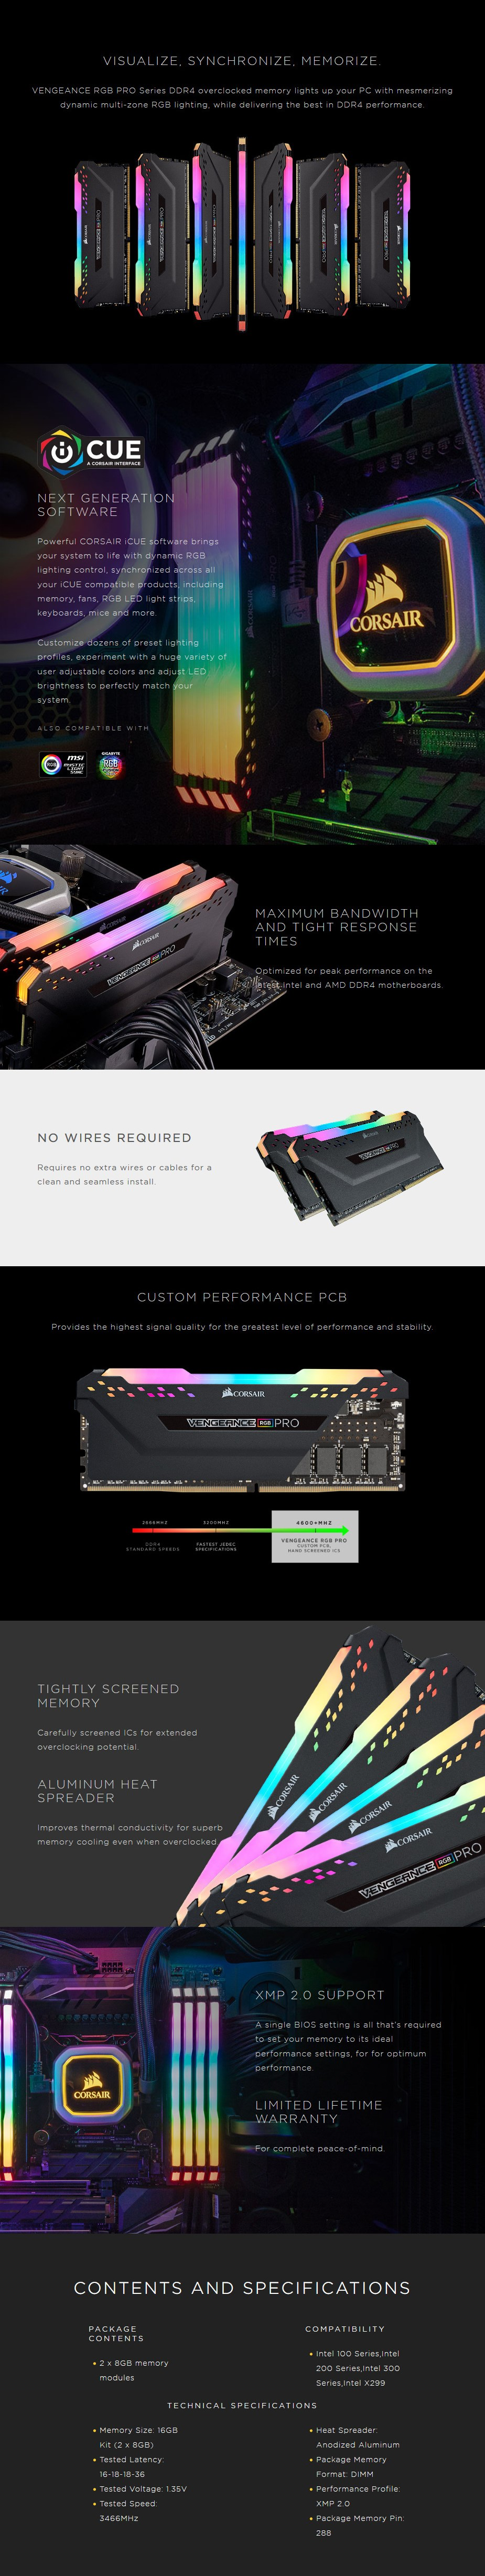 Corsair Vengeance RGB PRO 16GB (2x 8GB) DDR4 3466MHz Memory - Black - Desktop Overview